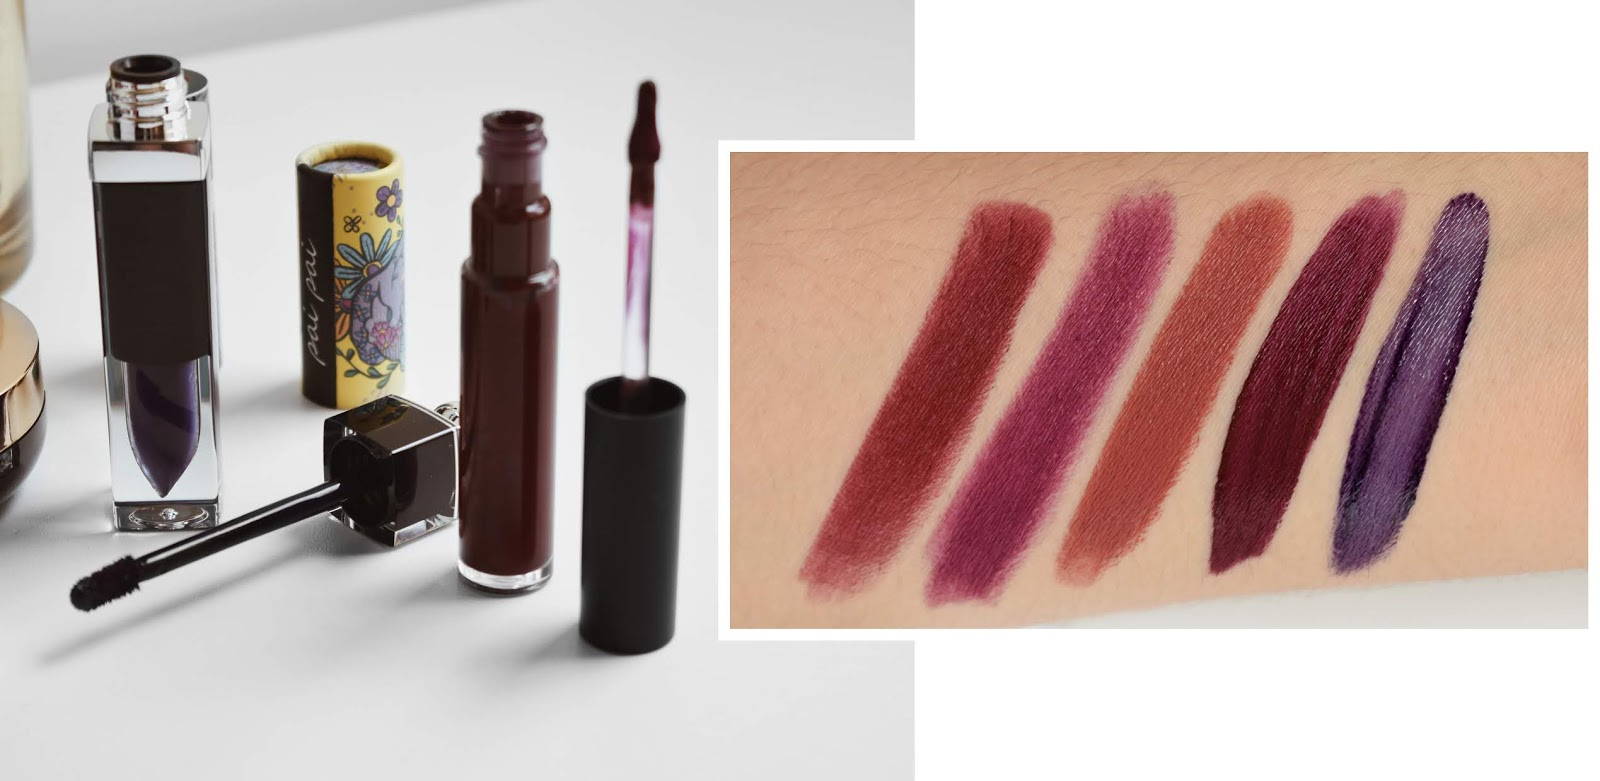 fall autumn lipsticks must have beauty makeup hacks maquillaje otoño labiales obscuros vampy lips burgundy purple morado 4